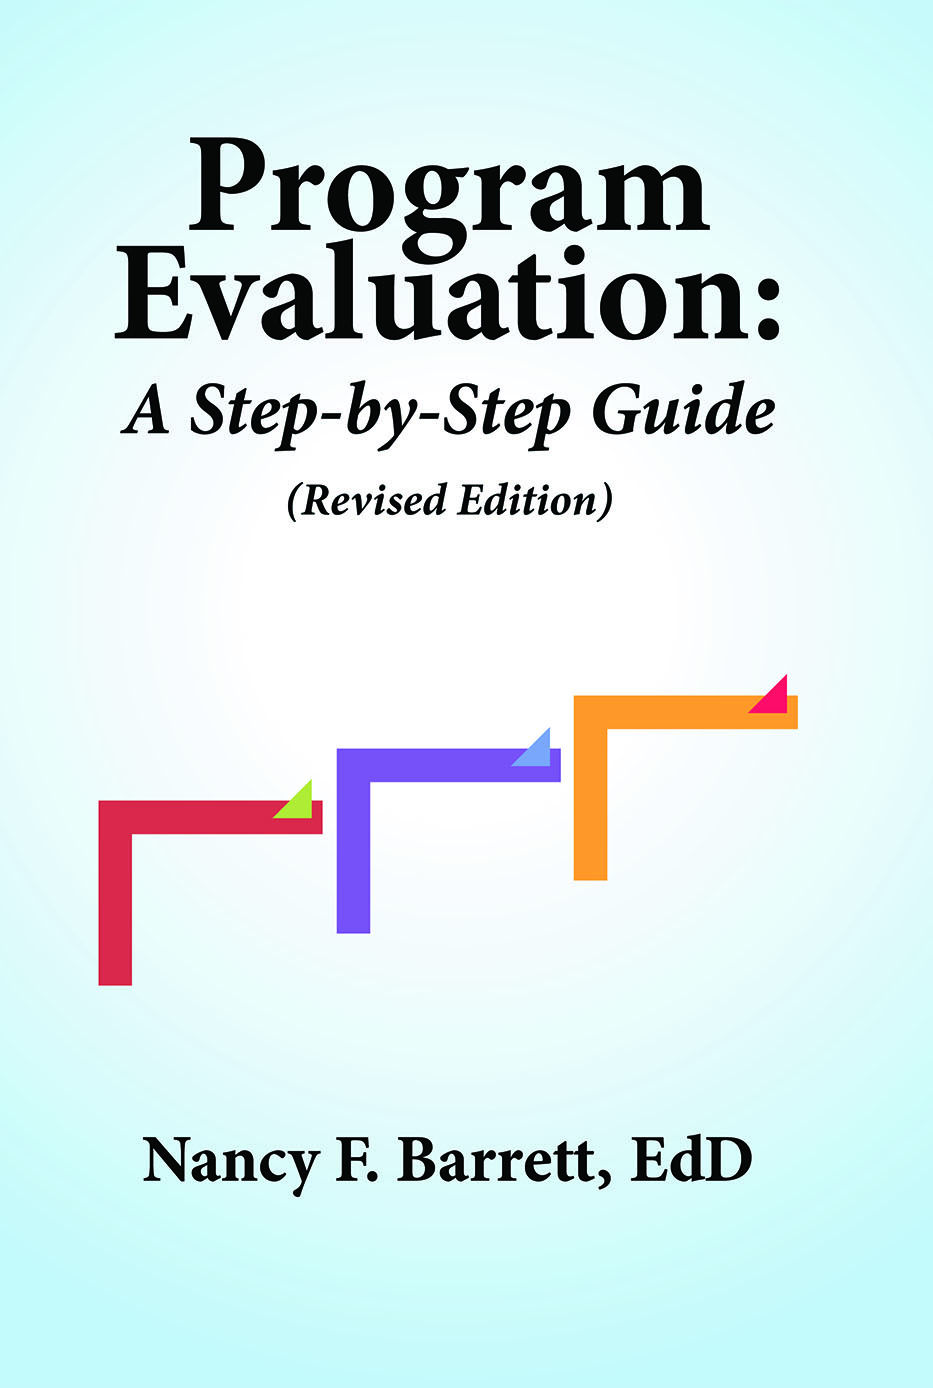 Program Evaluations: A Step-by-Step Guide (Revised Edition) cover image